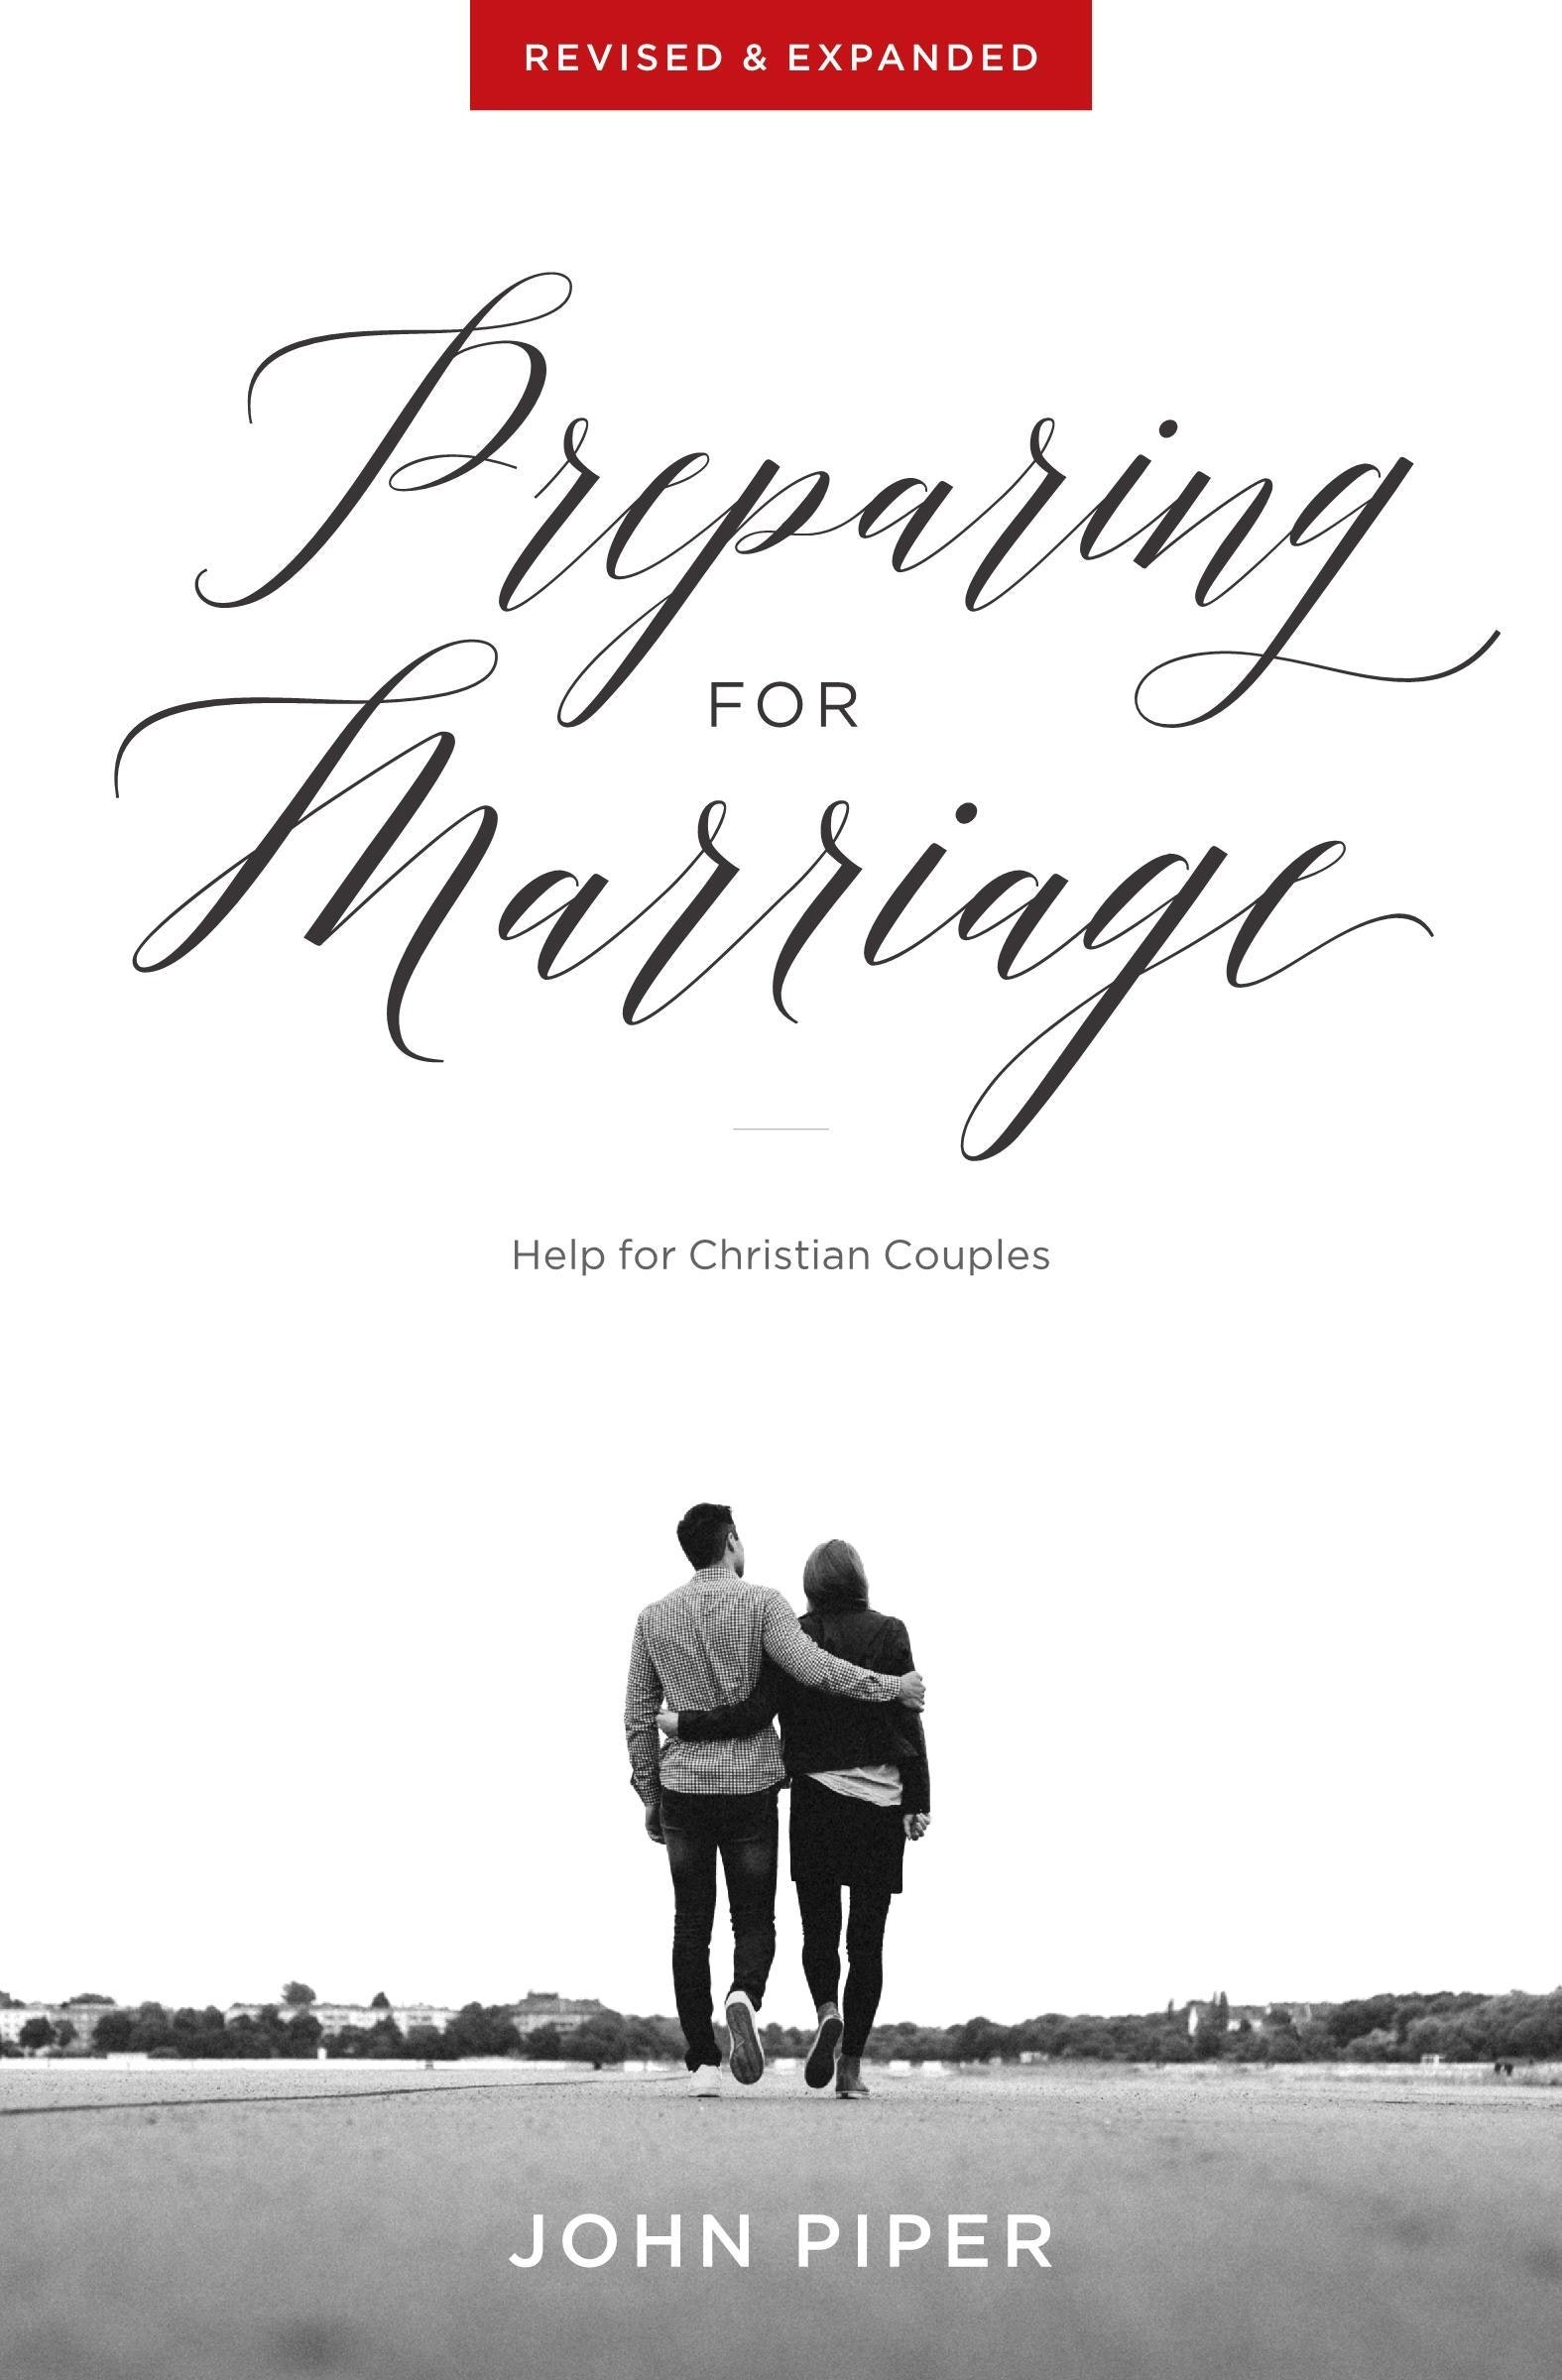 How does dating prepare you for marriage